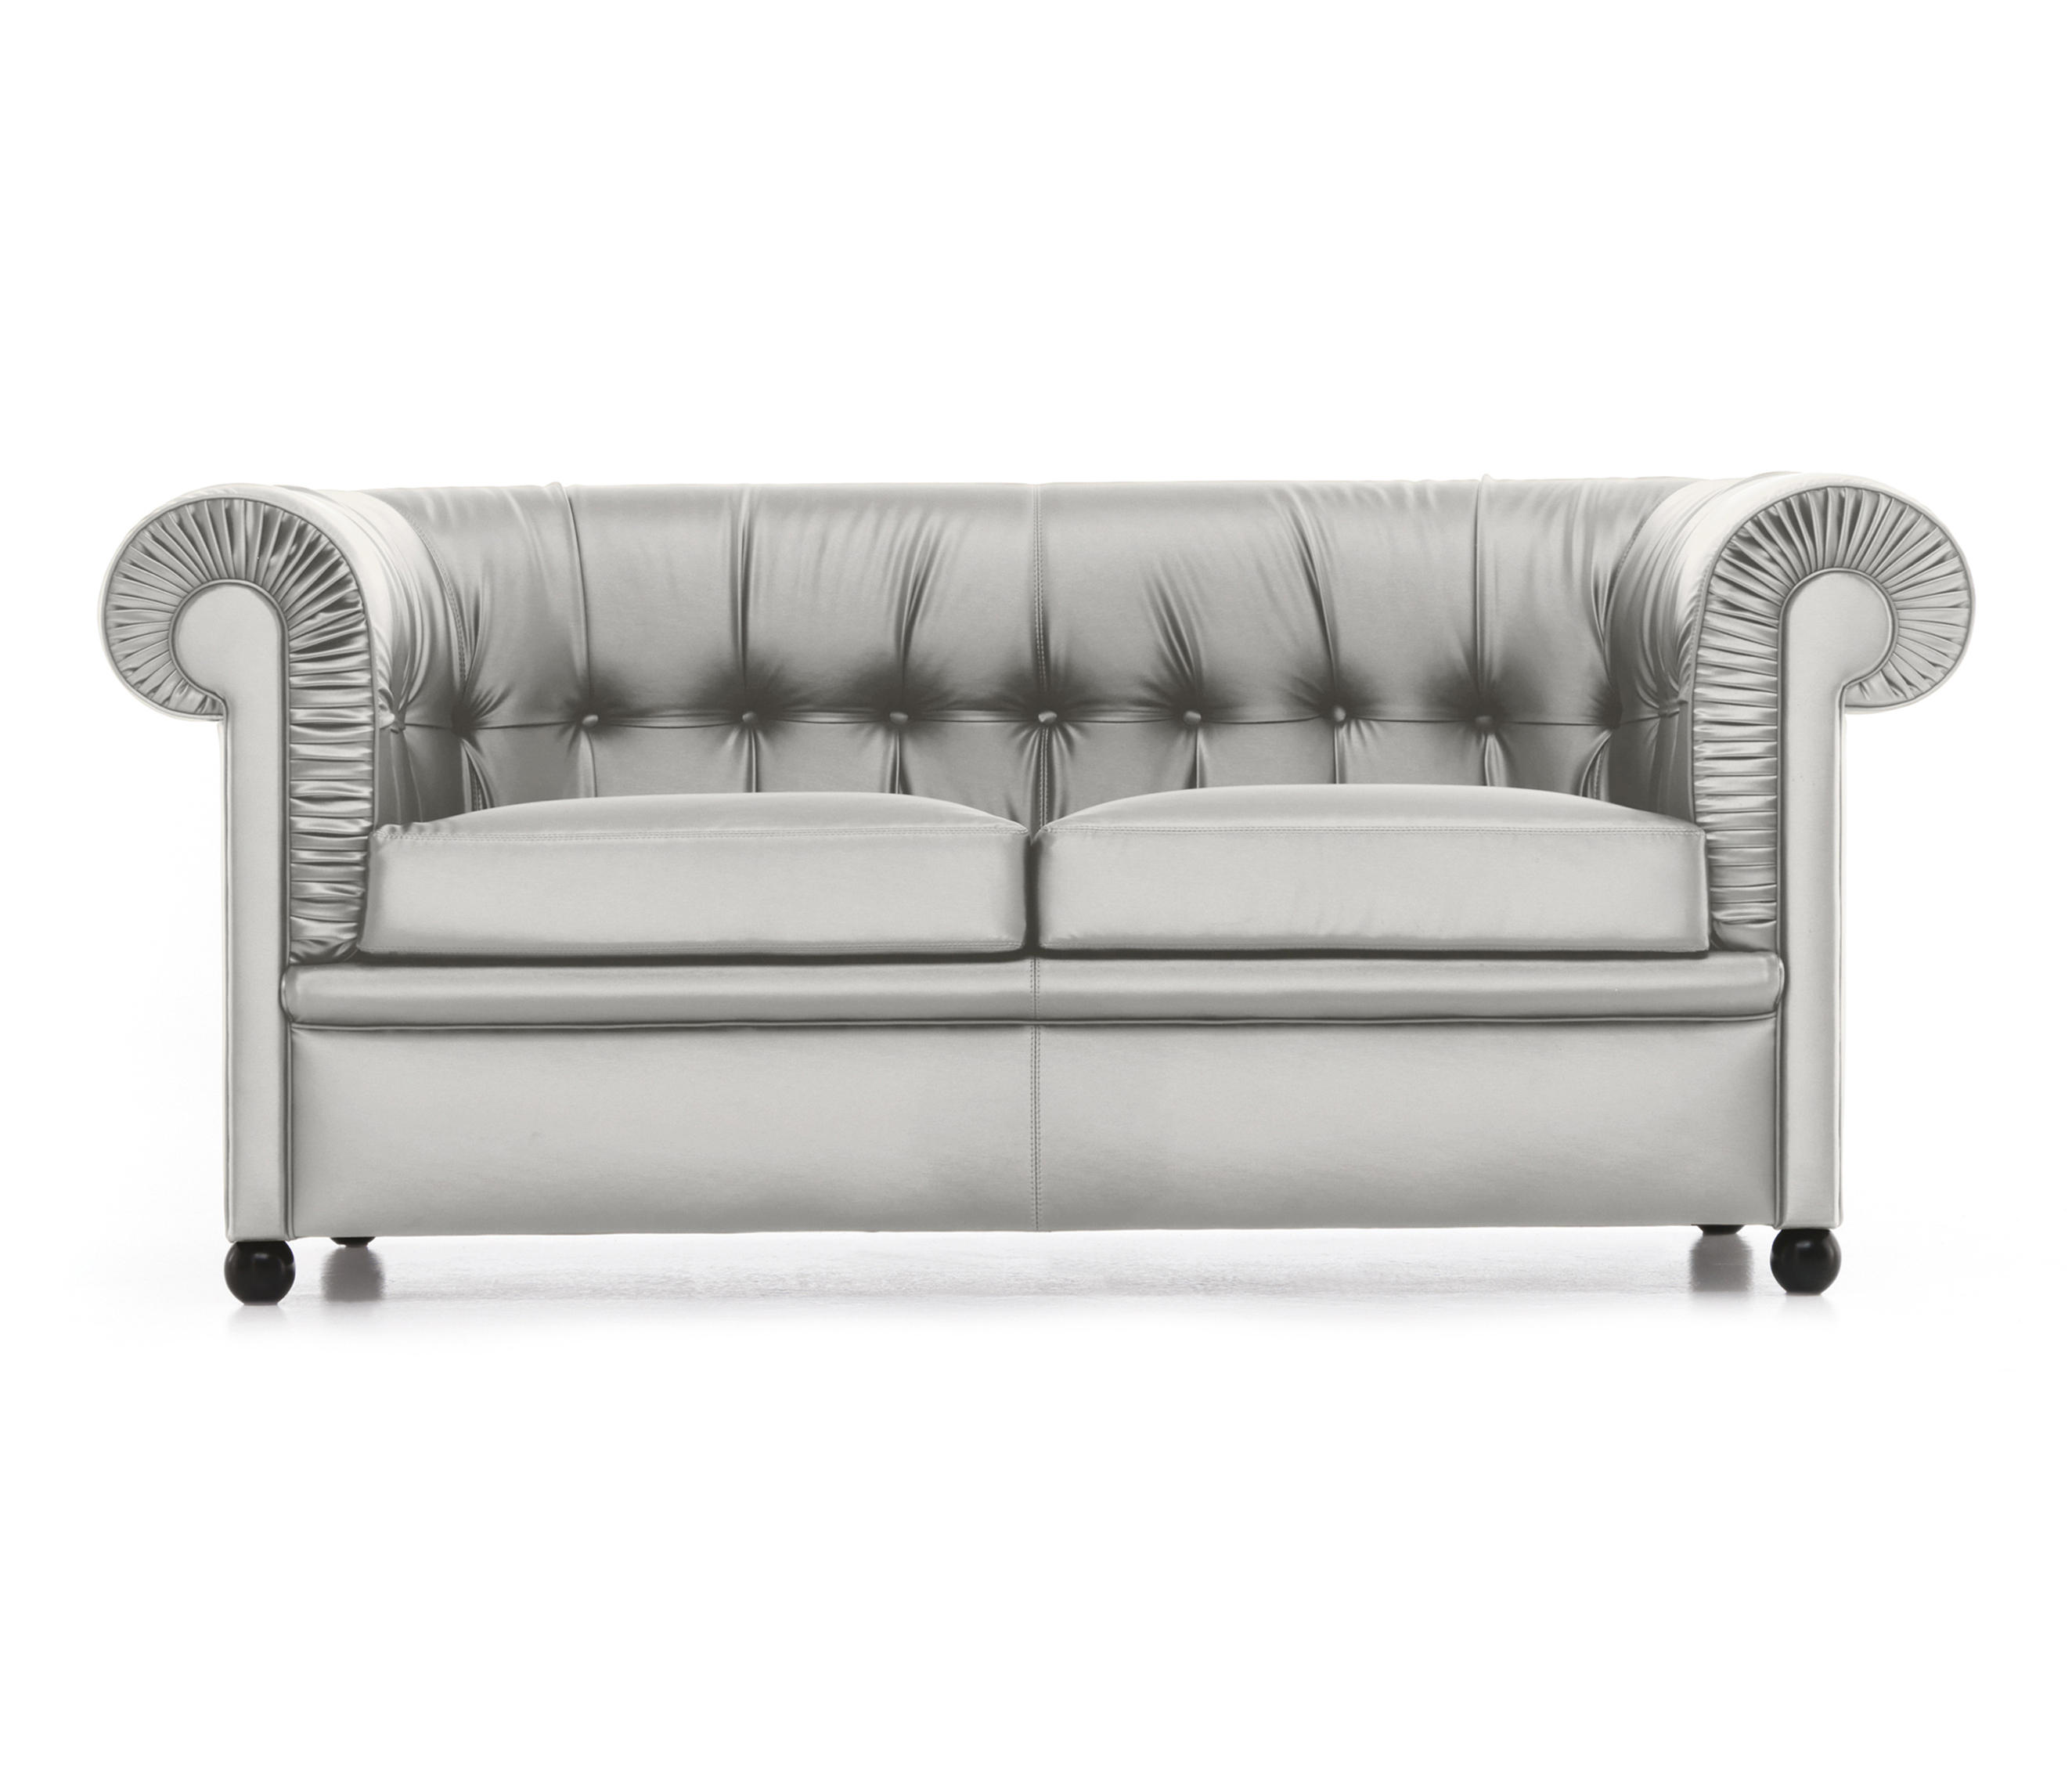 Bristol two seater sofa lounge sofas from baleri italia for Product design consultancy bristol